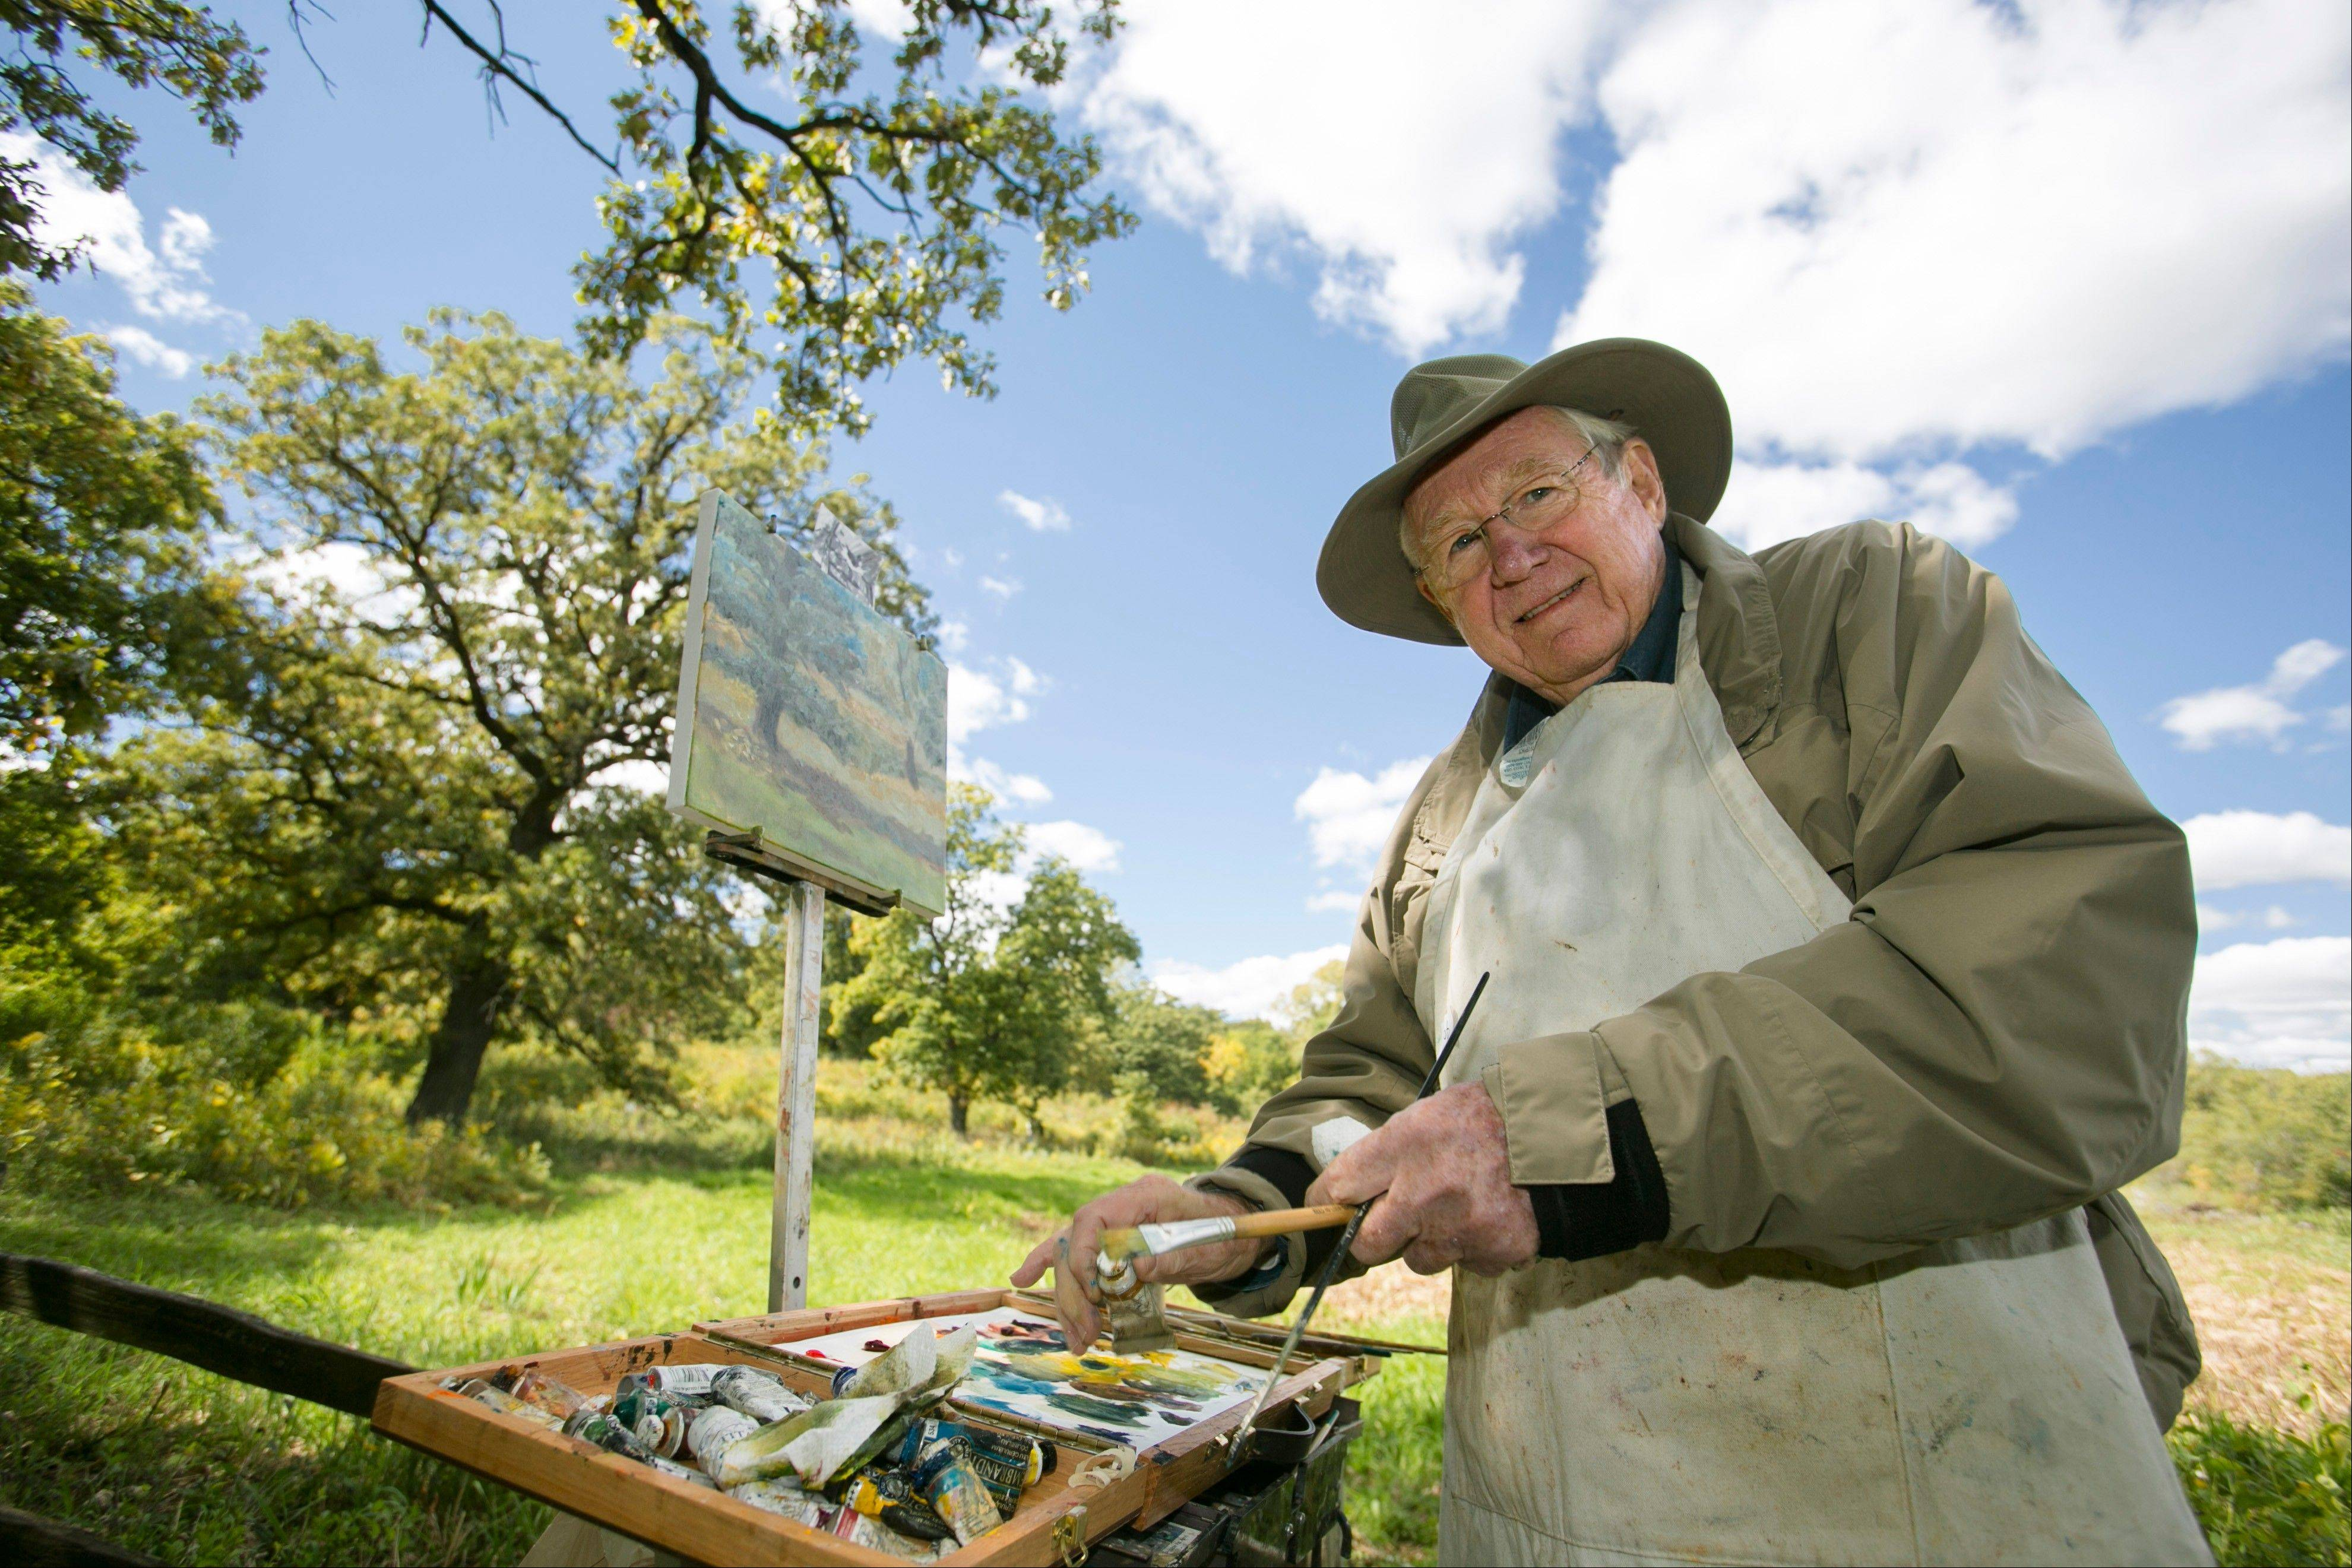 Fifty artists will be painting nature scenes at the Art in Nature event at Crabtree Nature Center Sunday.